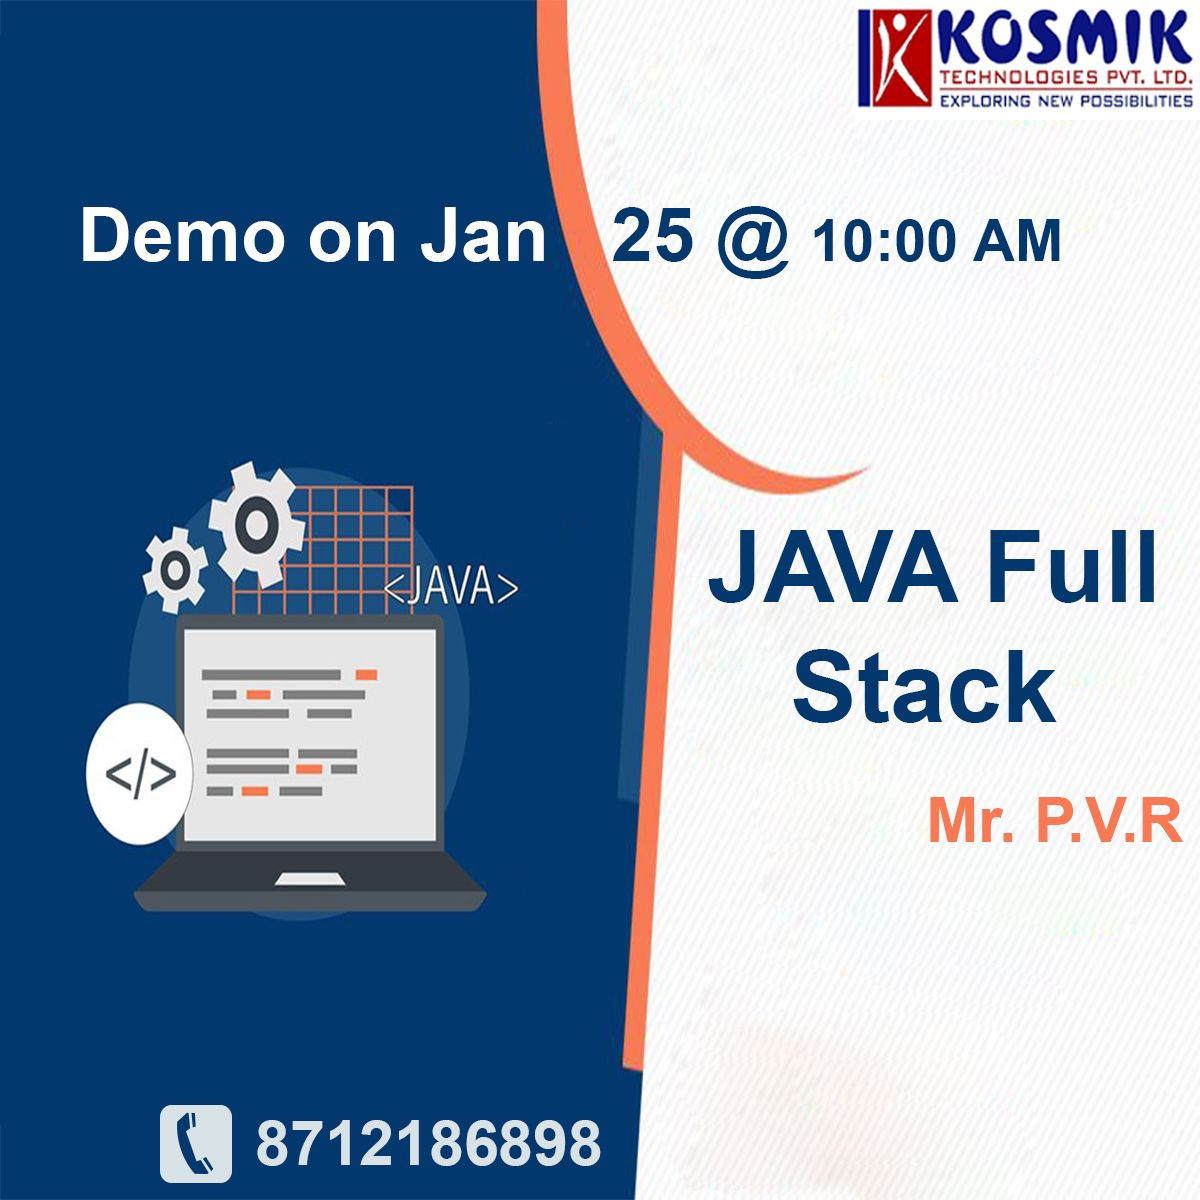 Java Full Stack Training In Hyderabad In 2020 Full Stack Developer Full Stack Introduction To Programming